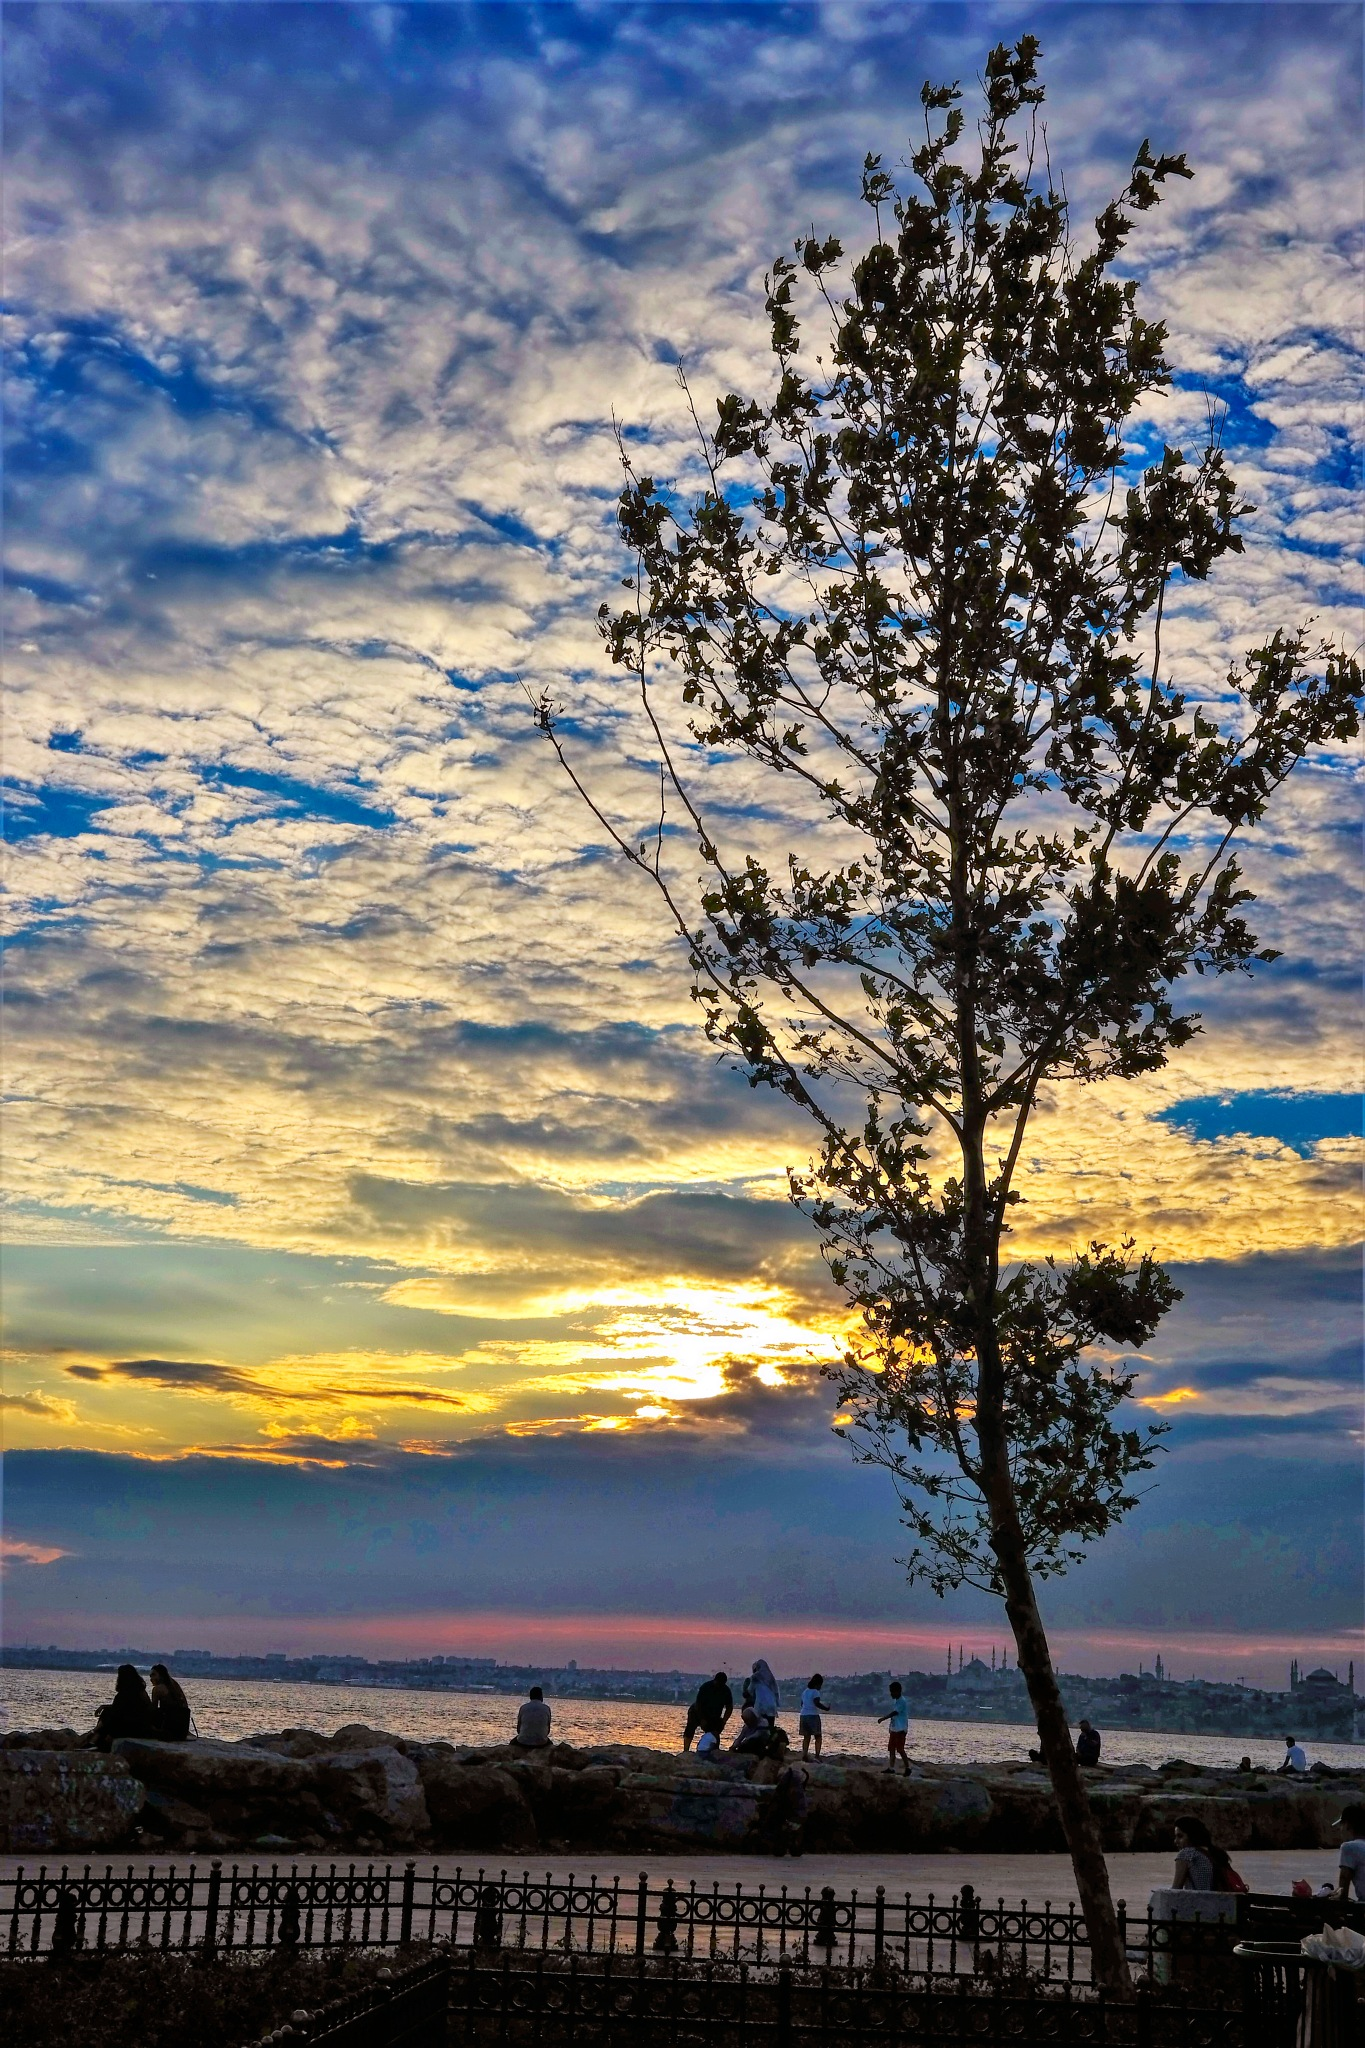 the tree and people by the sea by Muhsin Özcan